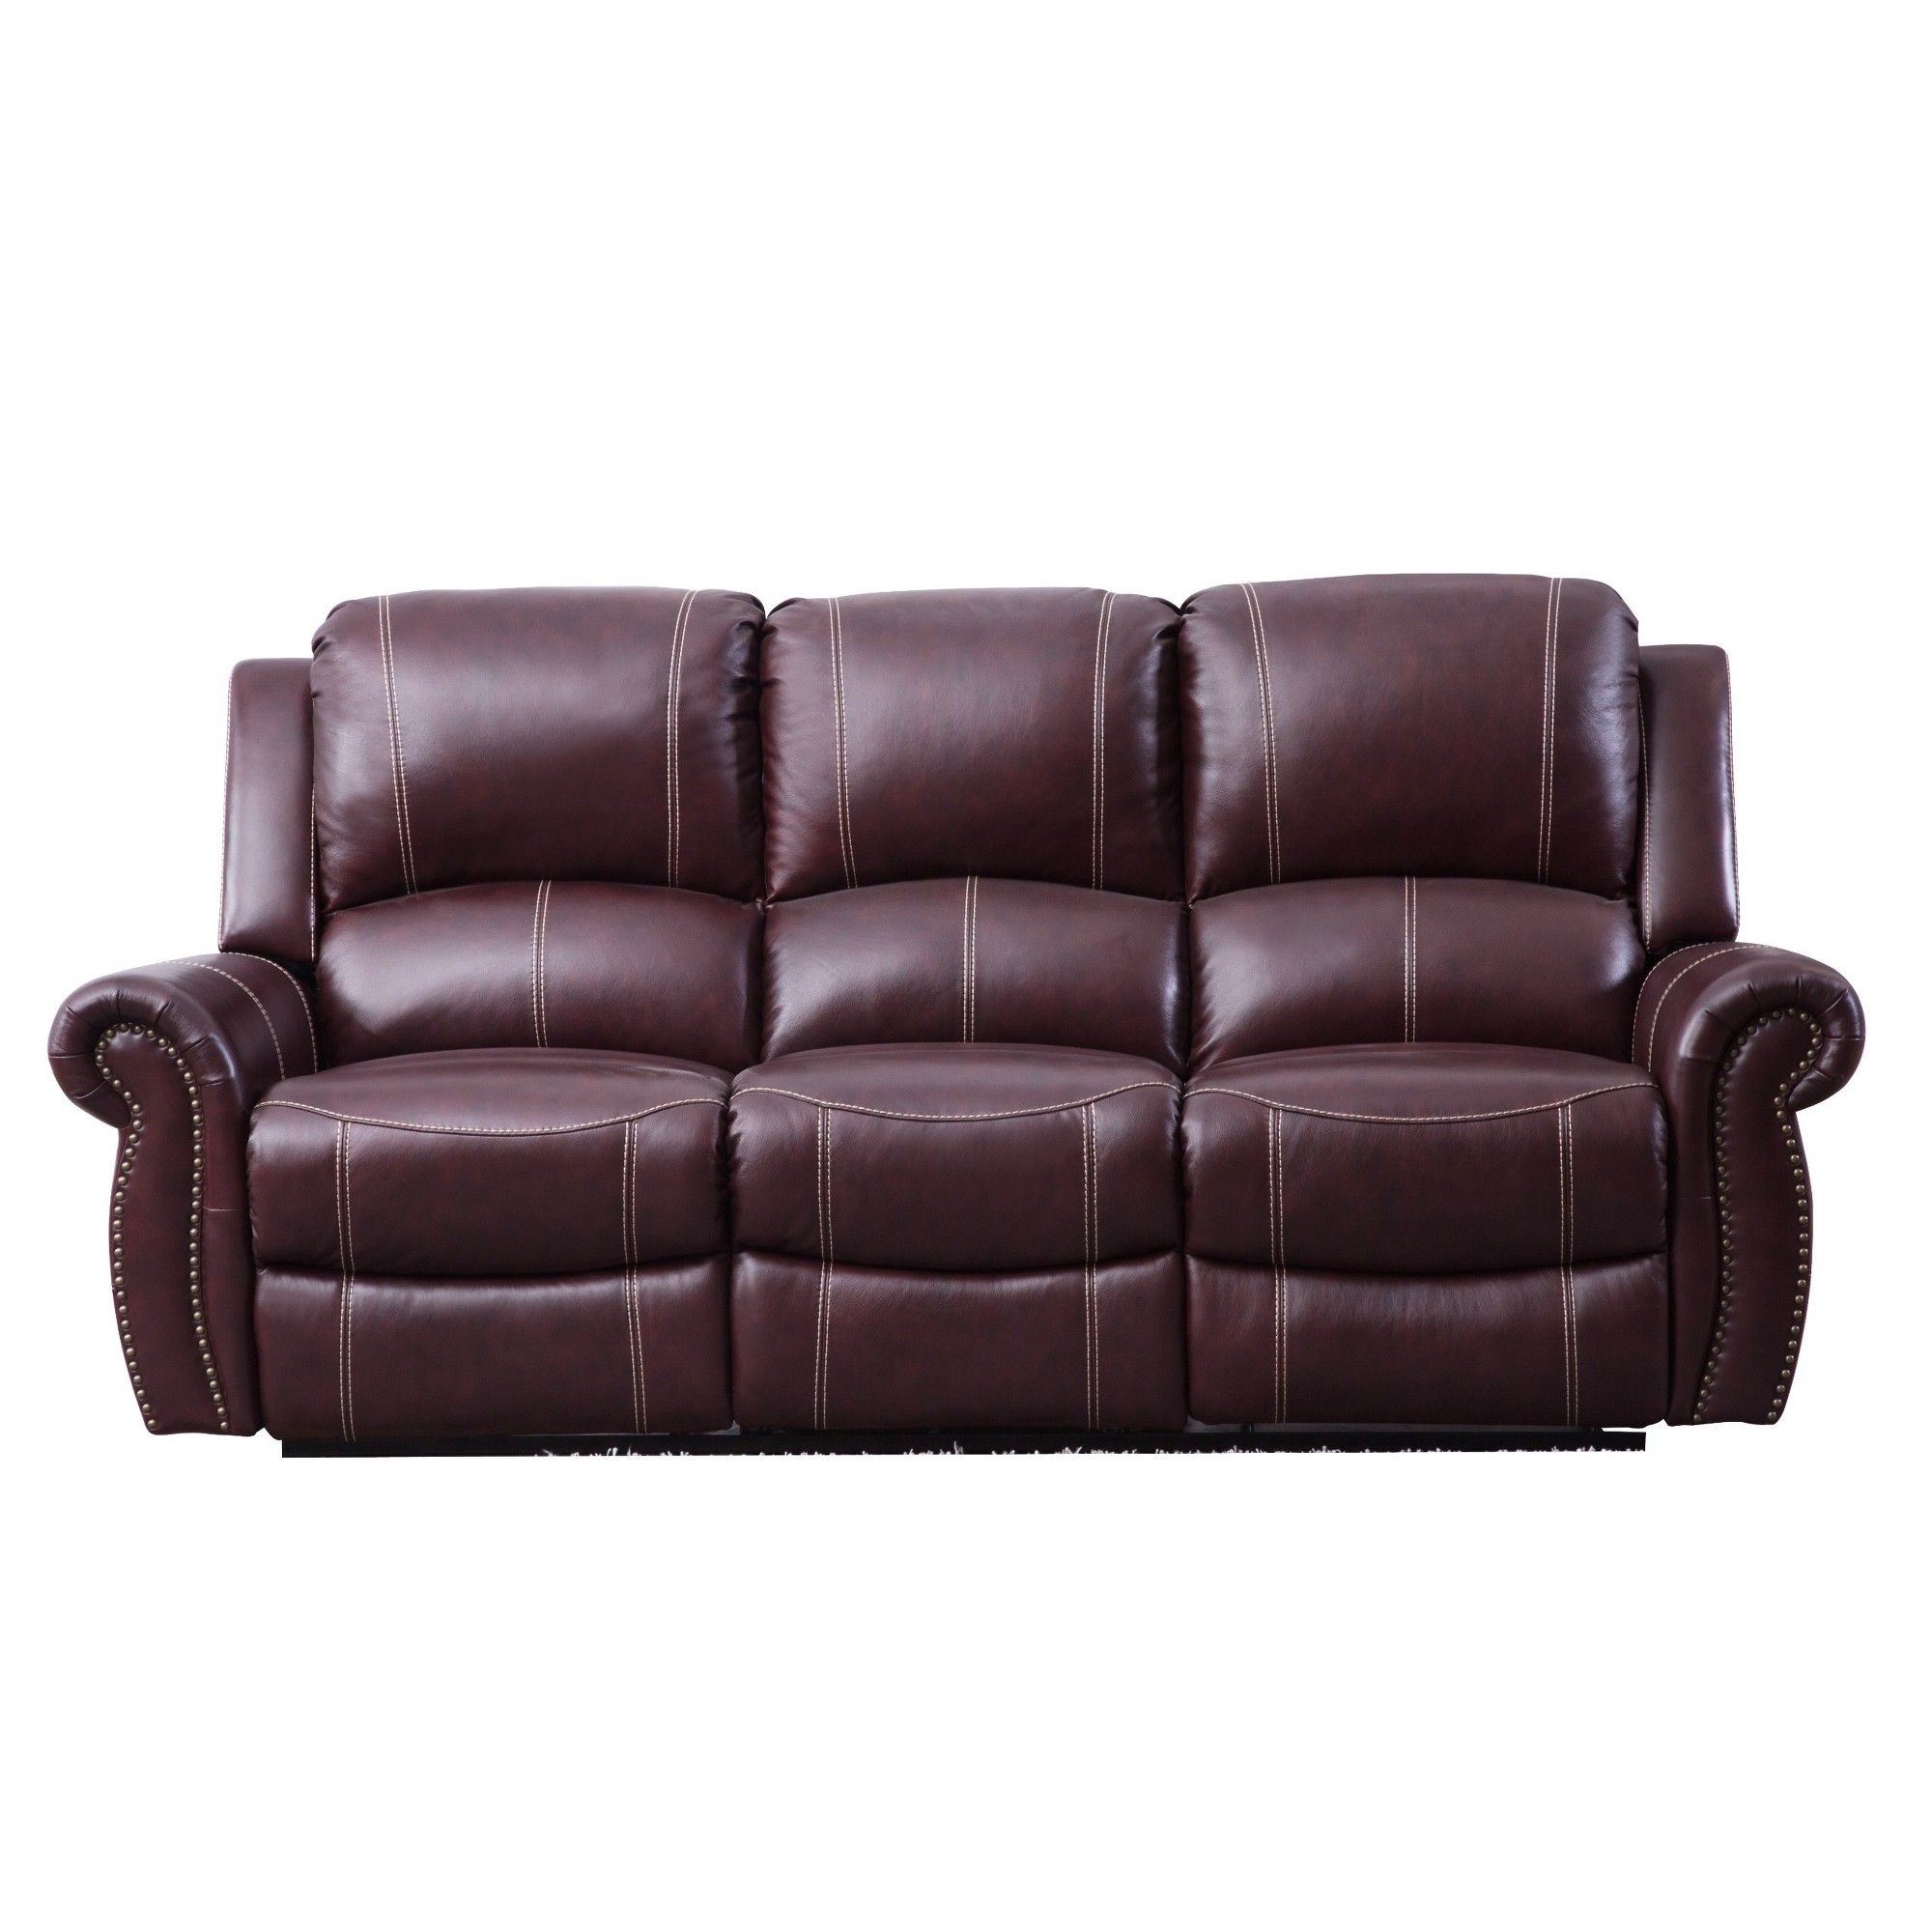 Cool Lorenzo Top Grain Leather Reclining Sofa Burgundy Abbyson Bralicious Painted Fabric Chair Ideas Braliciousco